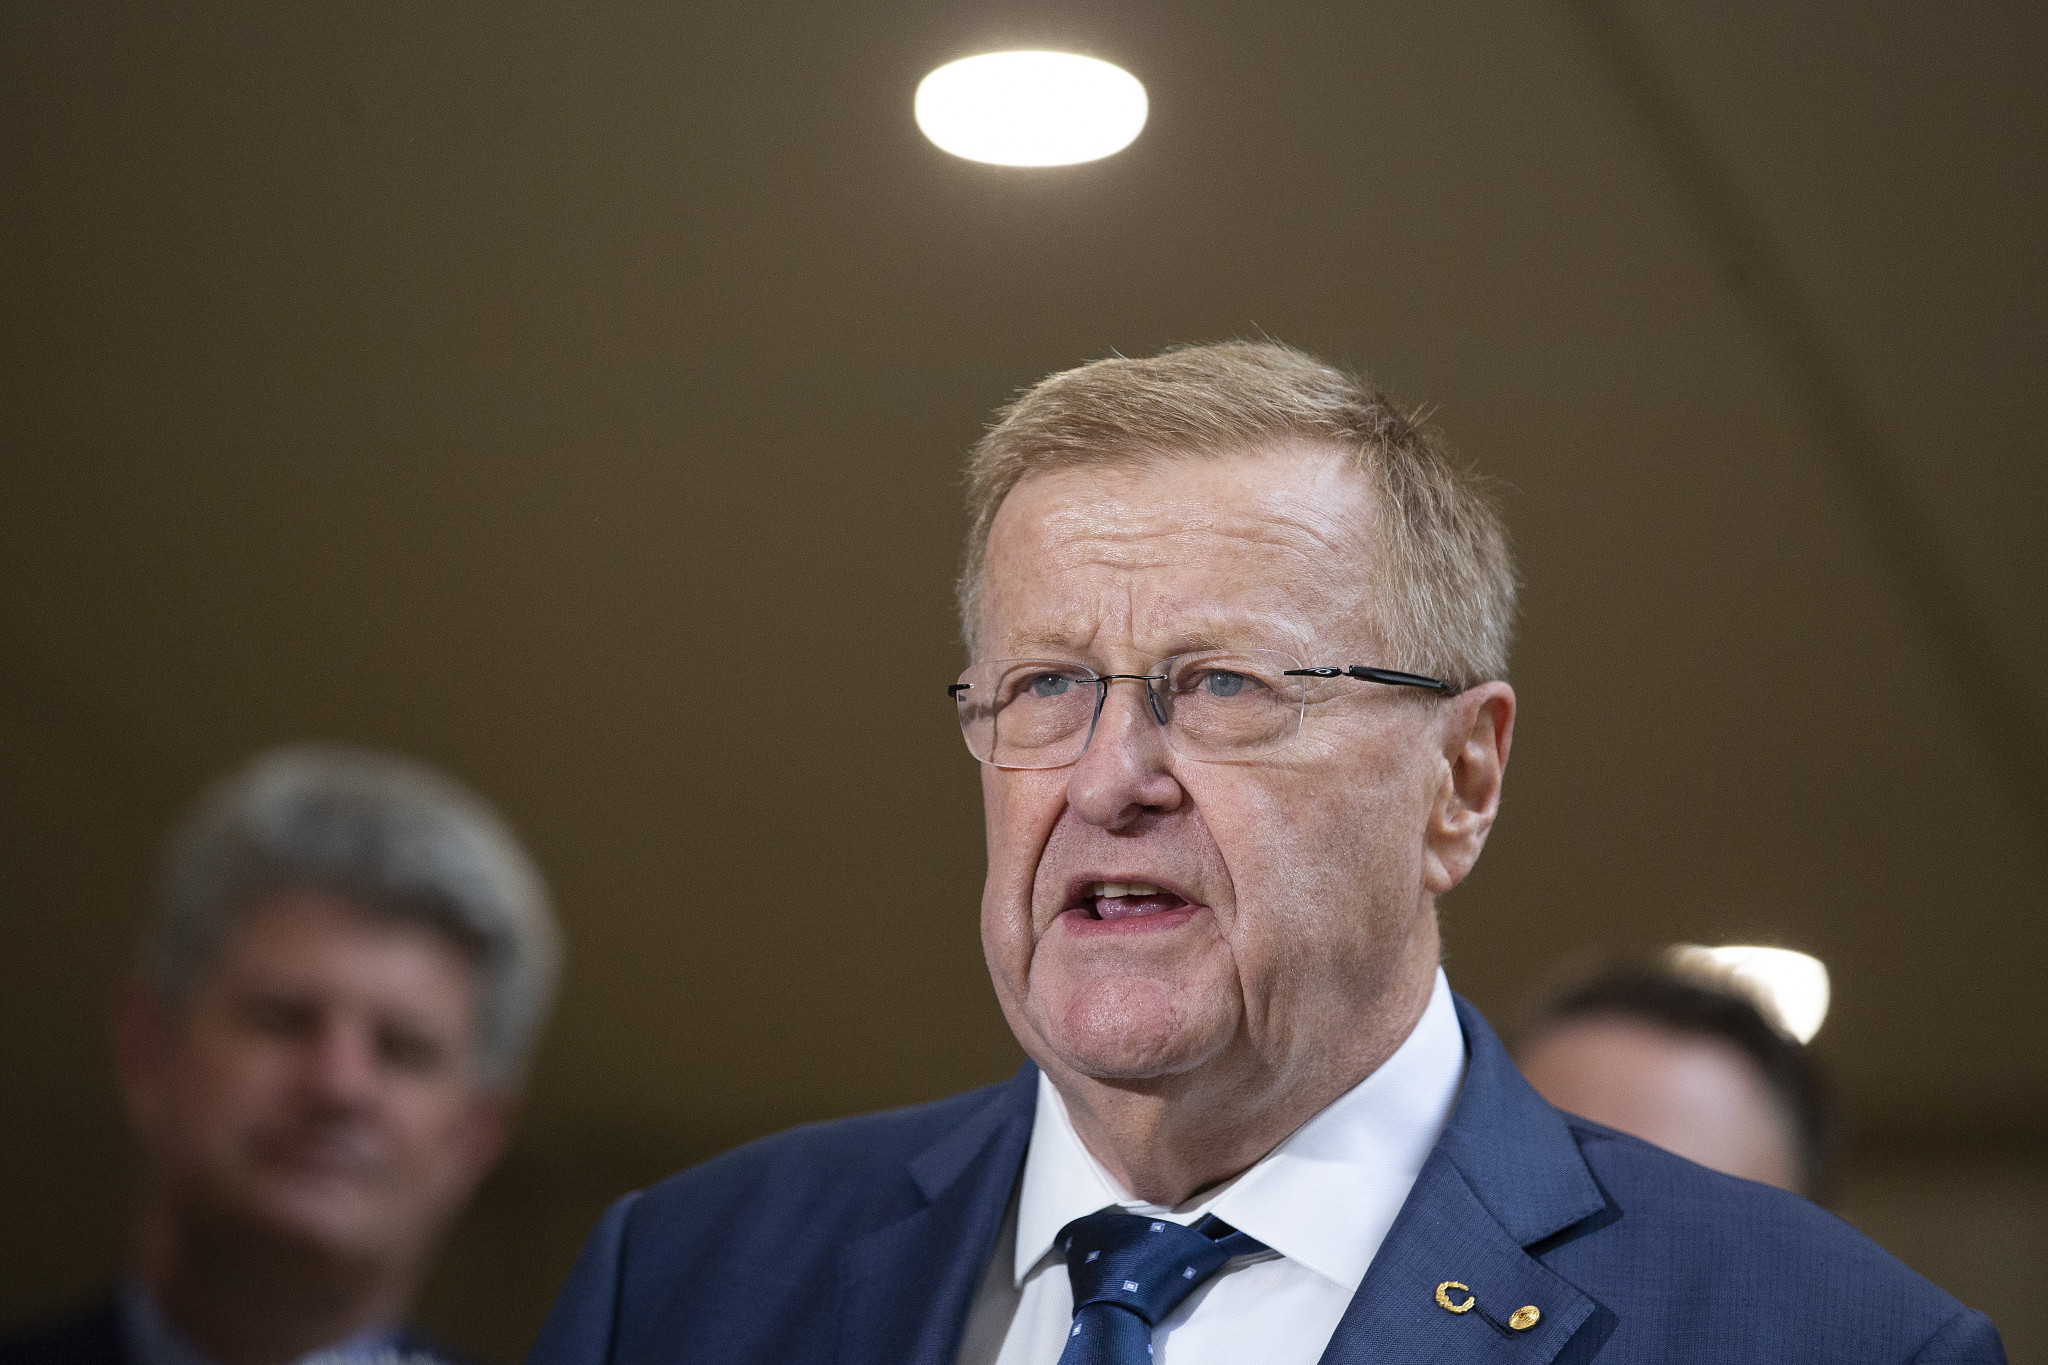 AOC President John Coates had been involved in the decision to change the host city selection process ©Getty Images